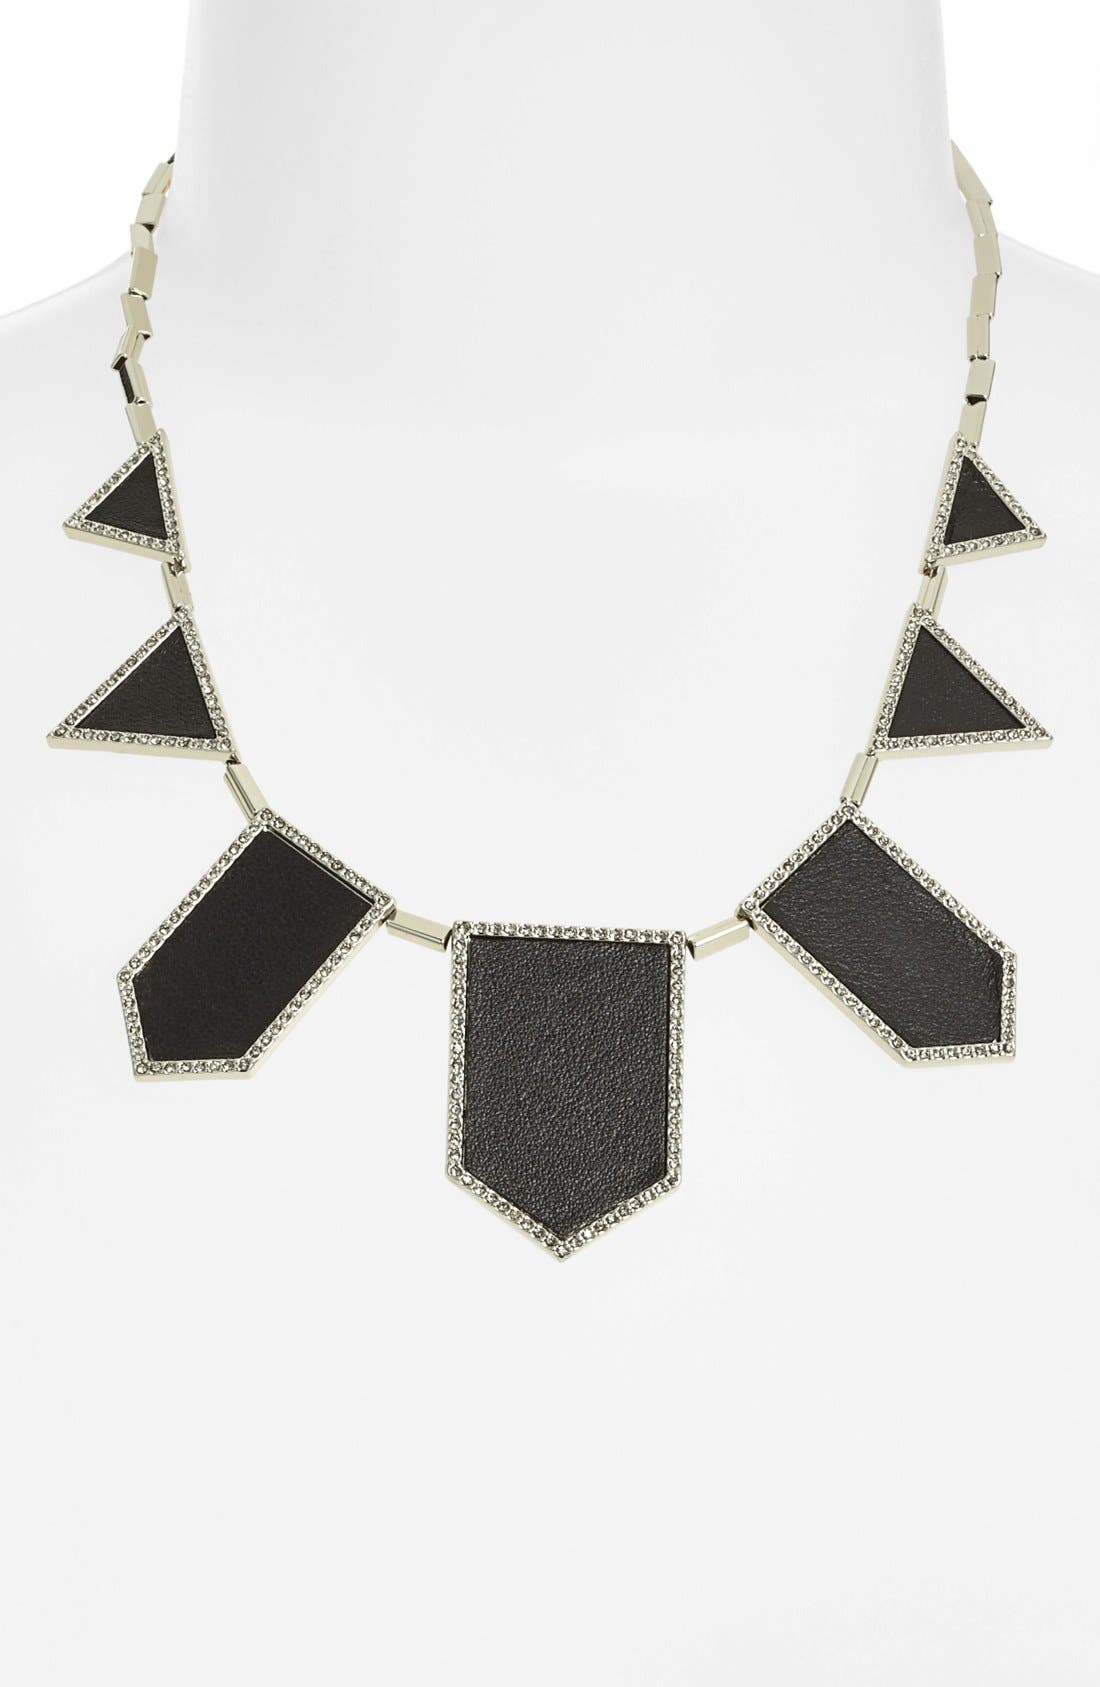 Alternate Image 1 Selected - House of Harlow 1960 Pavé Leather Bib Necklace